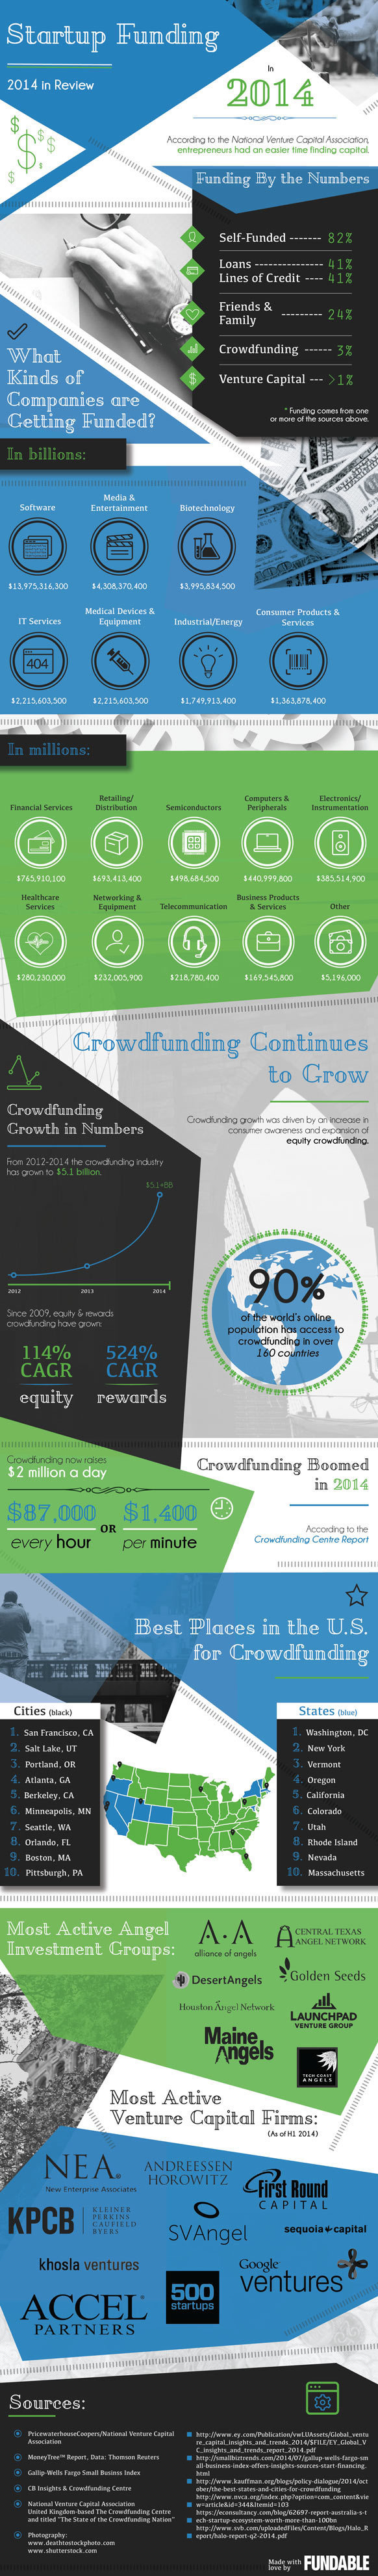 Startup Funding 2014 in Review Infographic